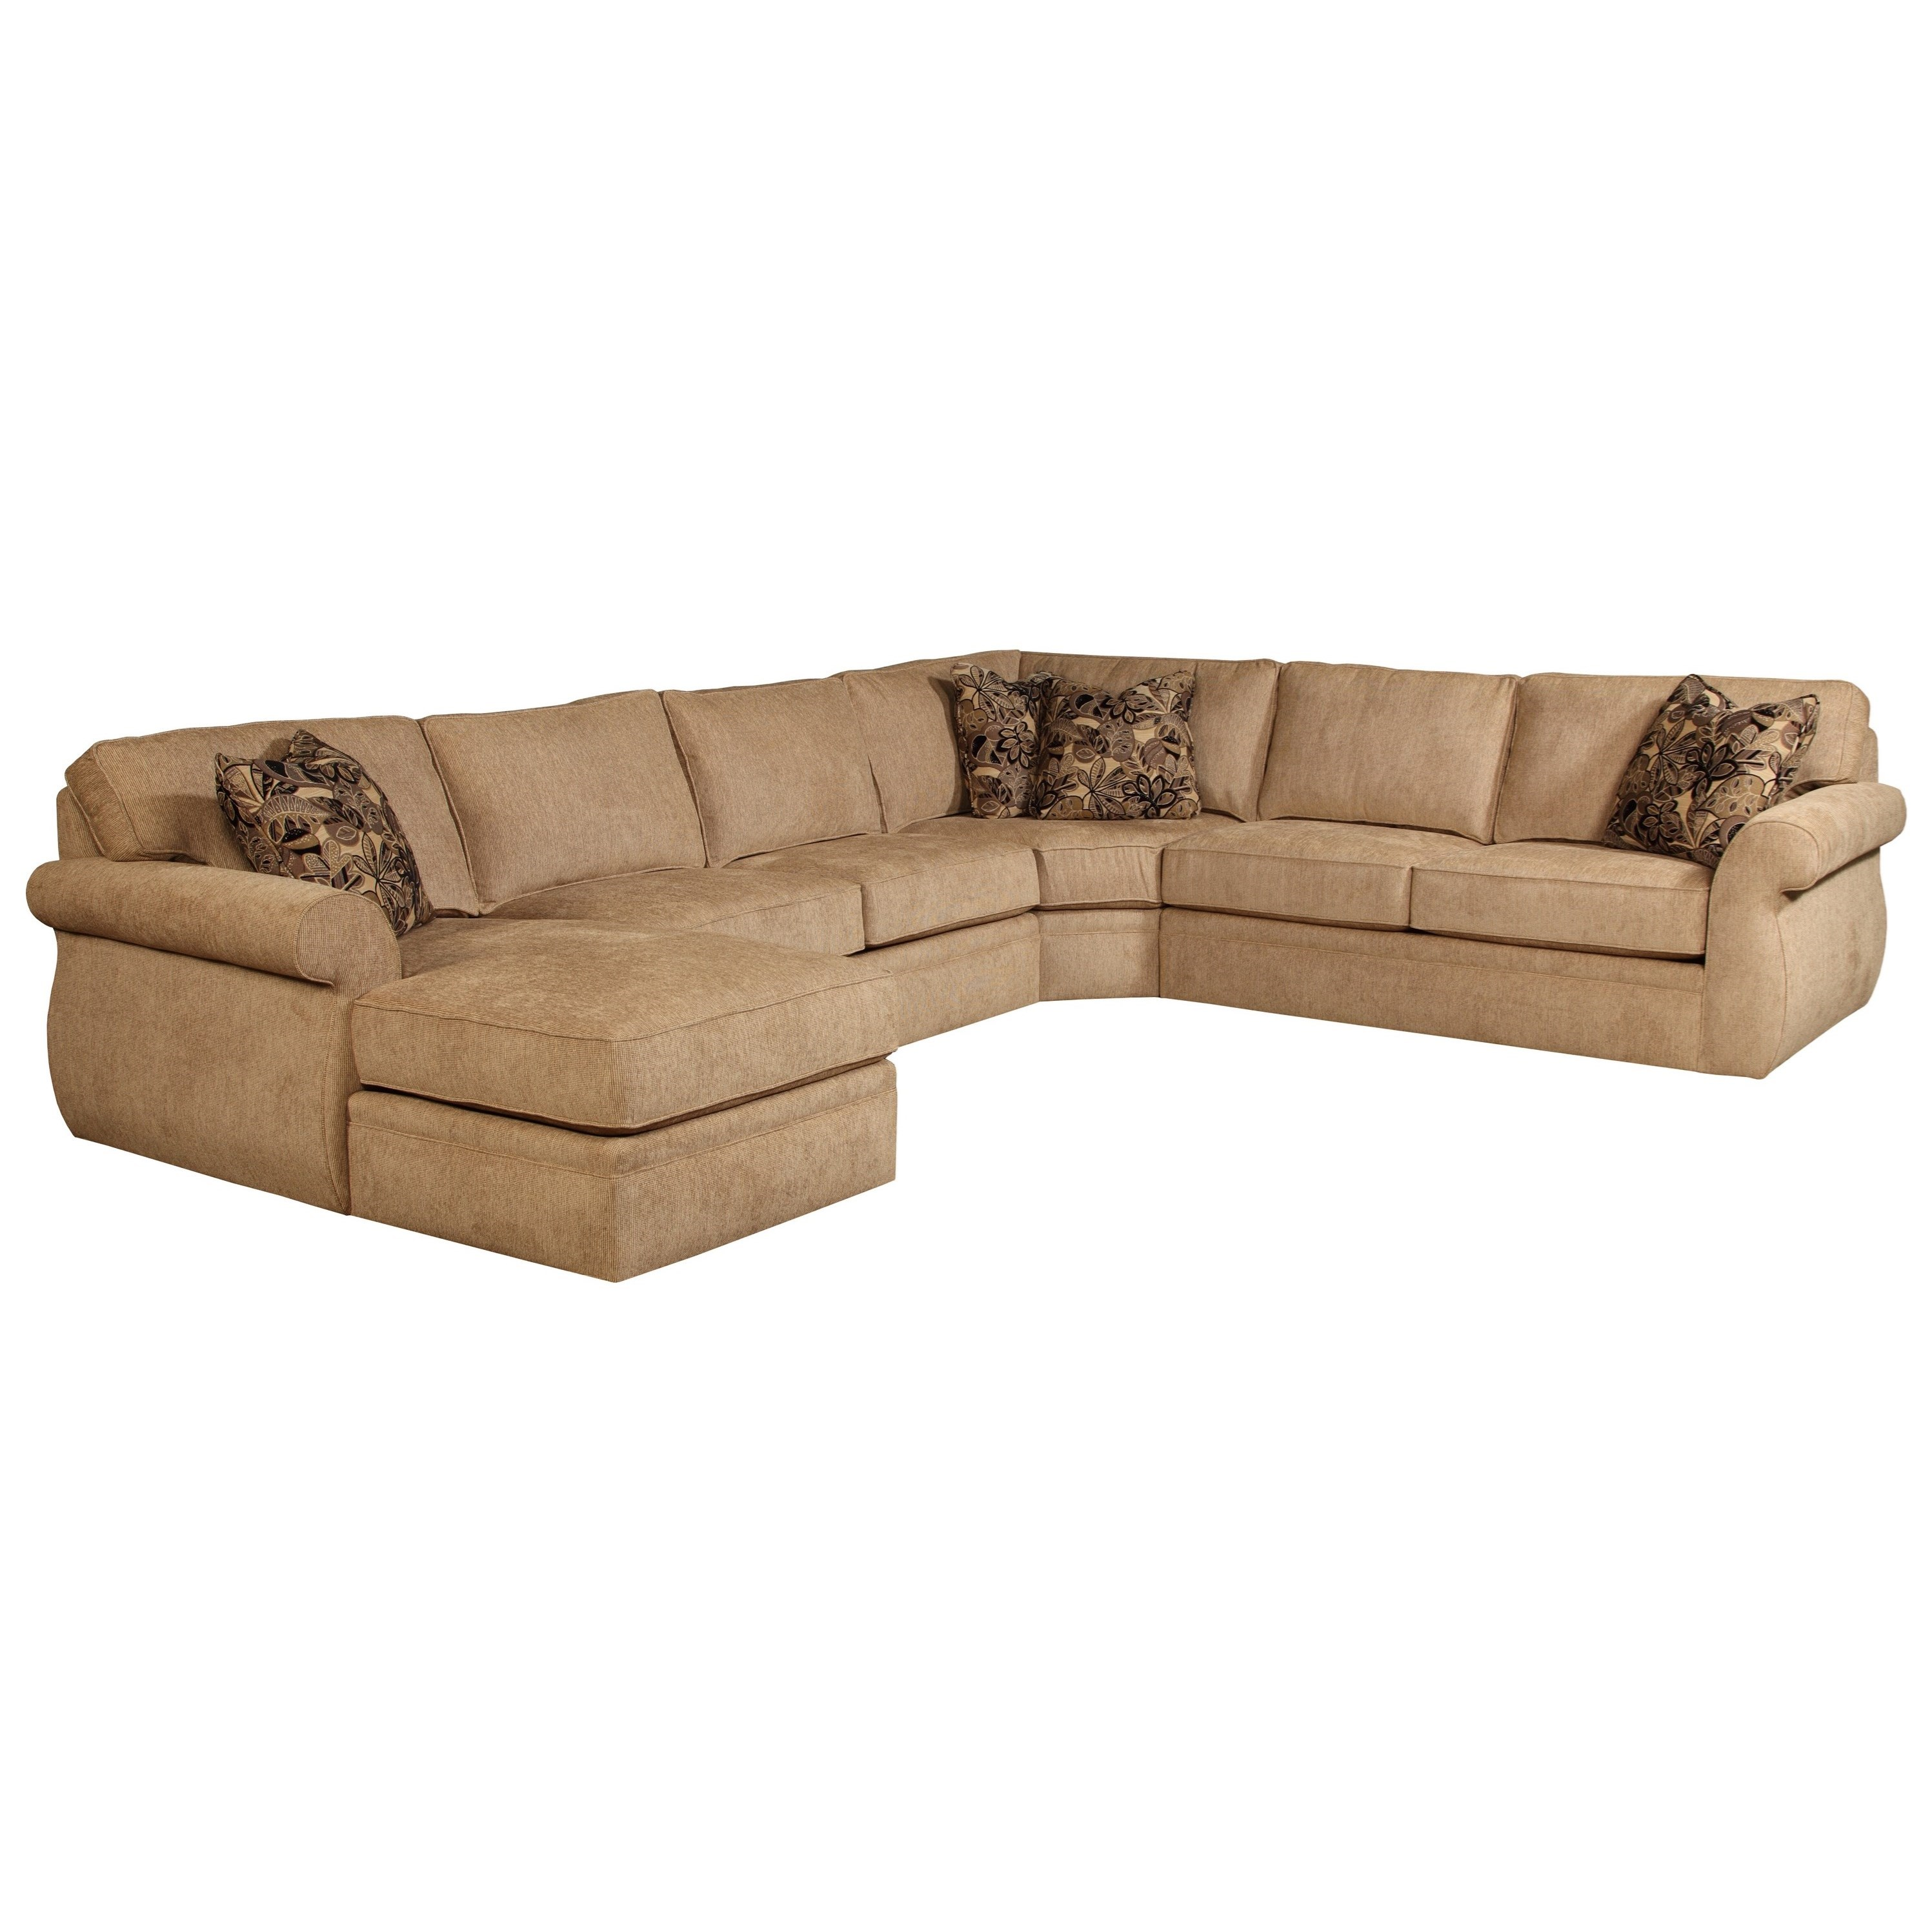 Broyhill furniture veronica chaise sectional sofa for Broyhill caitlyn chaise